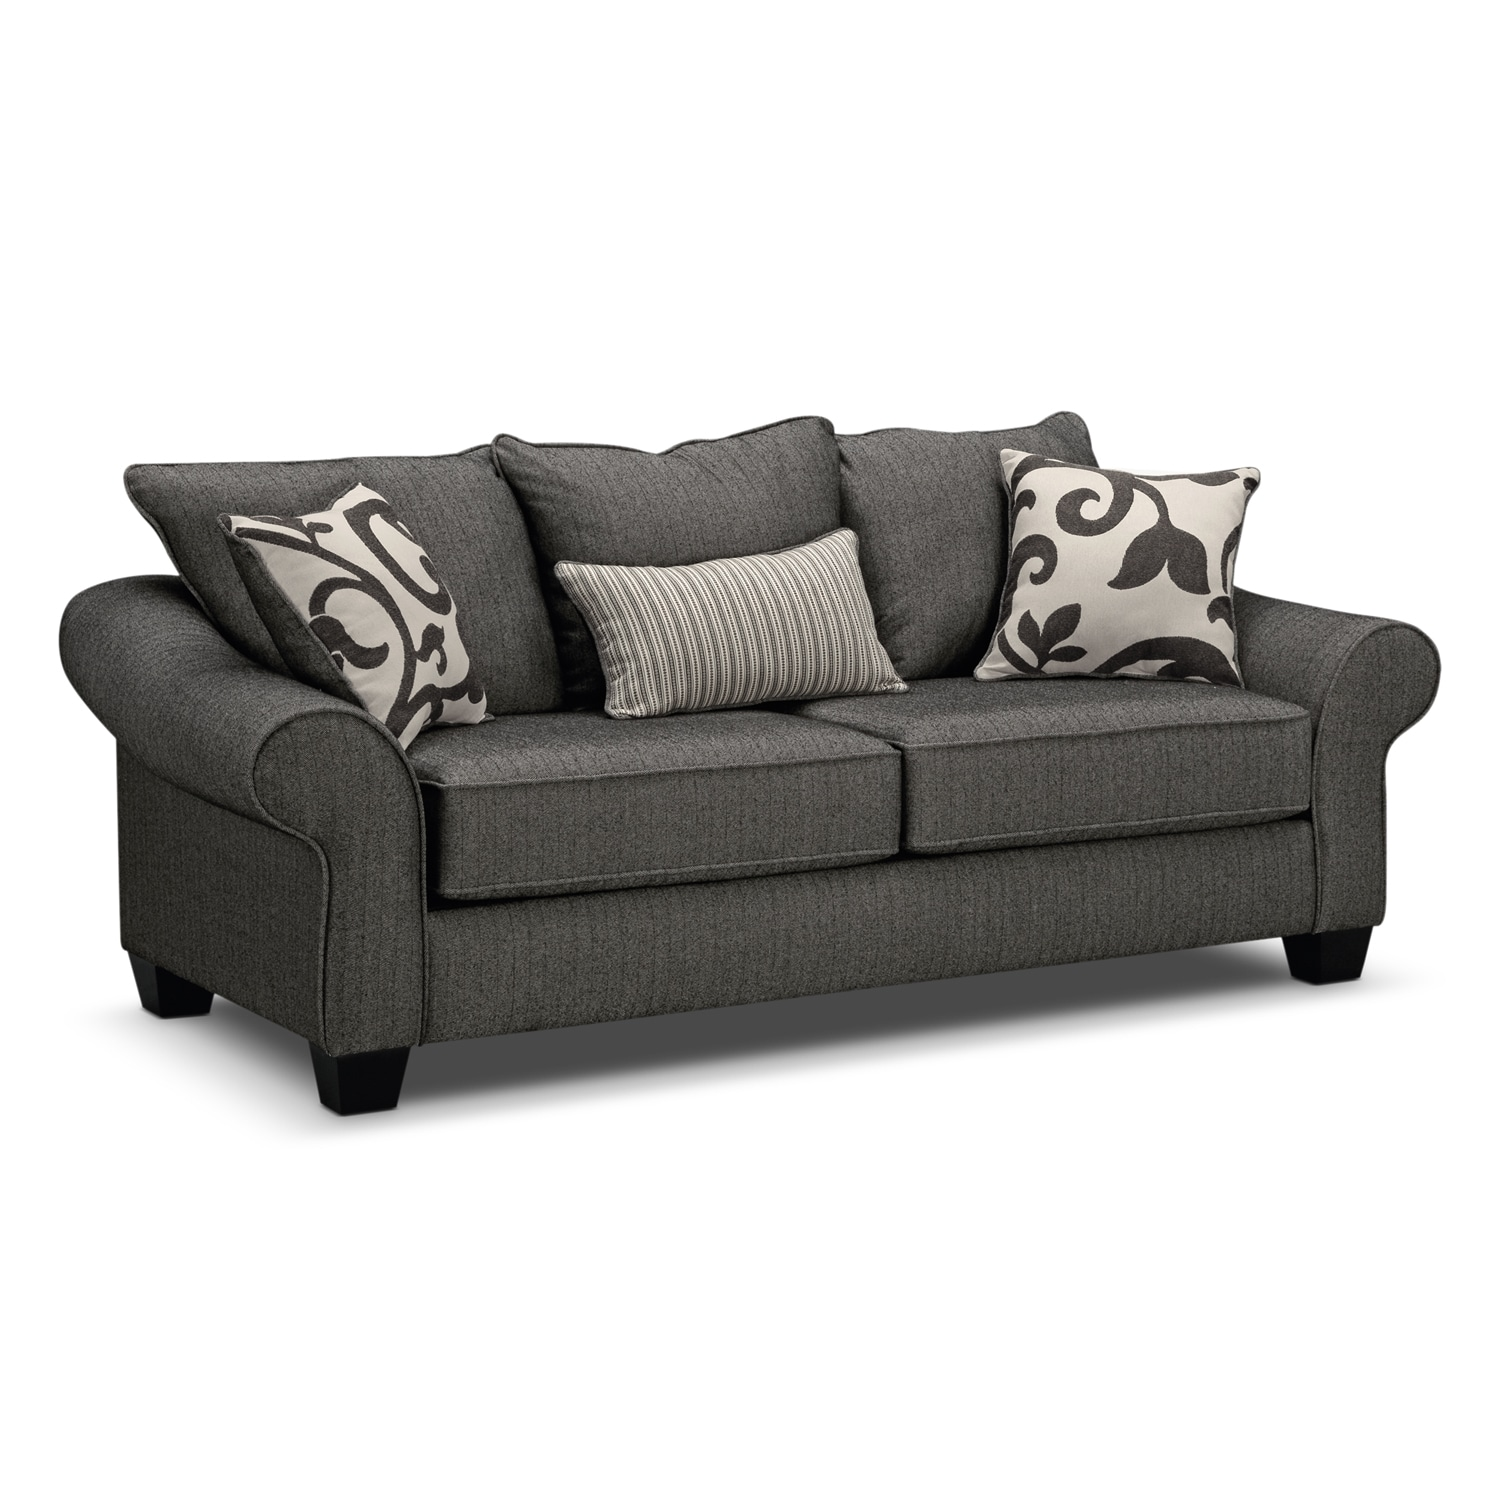 Sofas couches living room seating value city furniture and colette sofa gray parisarafo Gallery